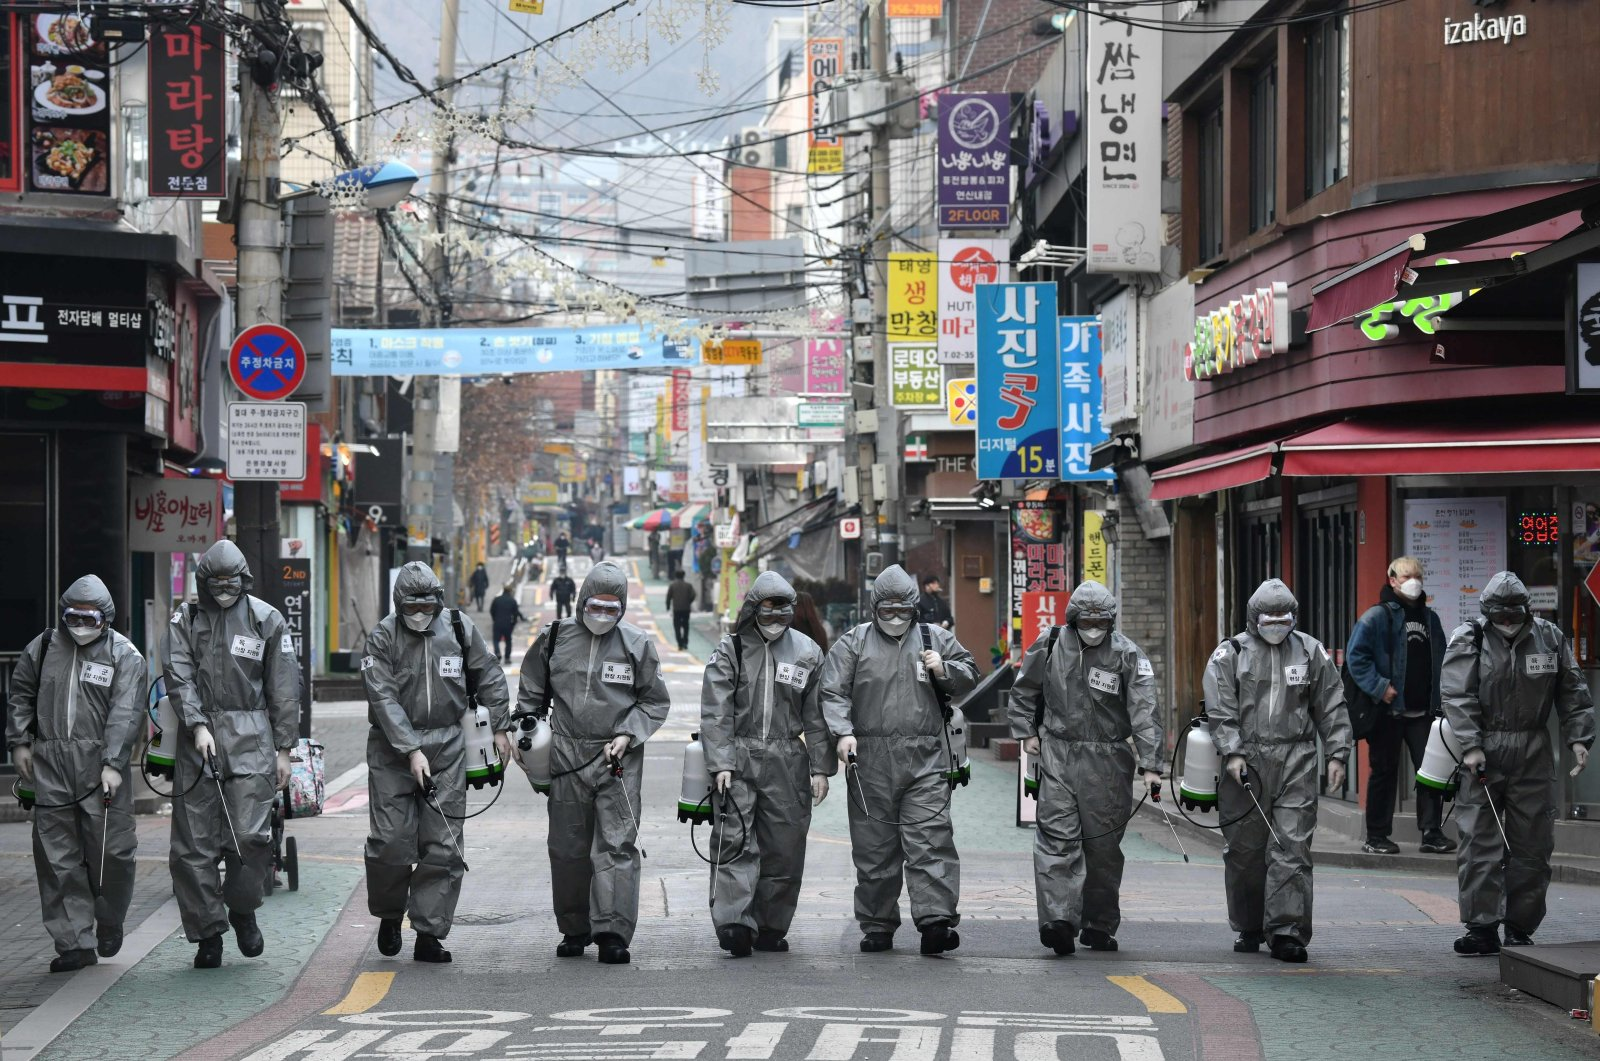 South Korean soldiers wearing protective gear spray disinfectant to help prevent the spread of the COVID-19 coronavirus, at a shopping district in Seoul, March 4, 2020. (AFP Photo)